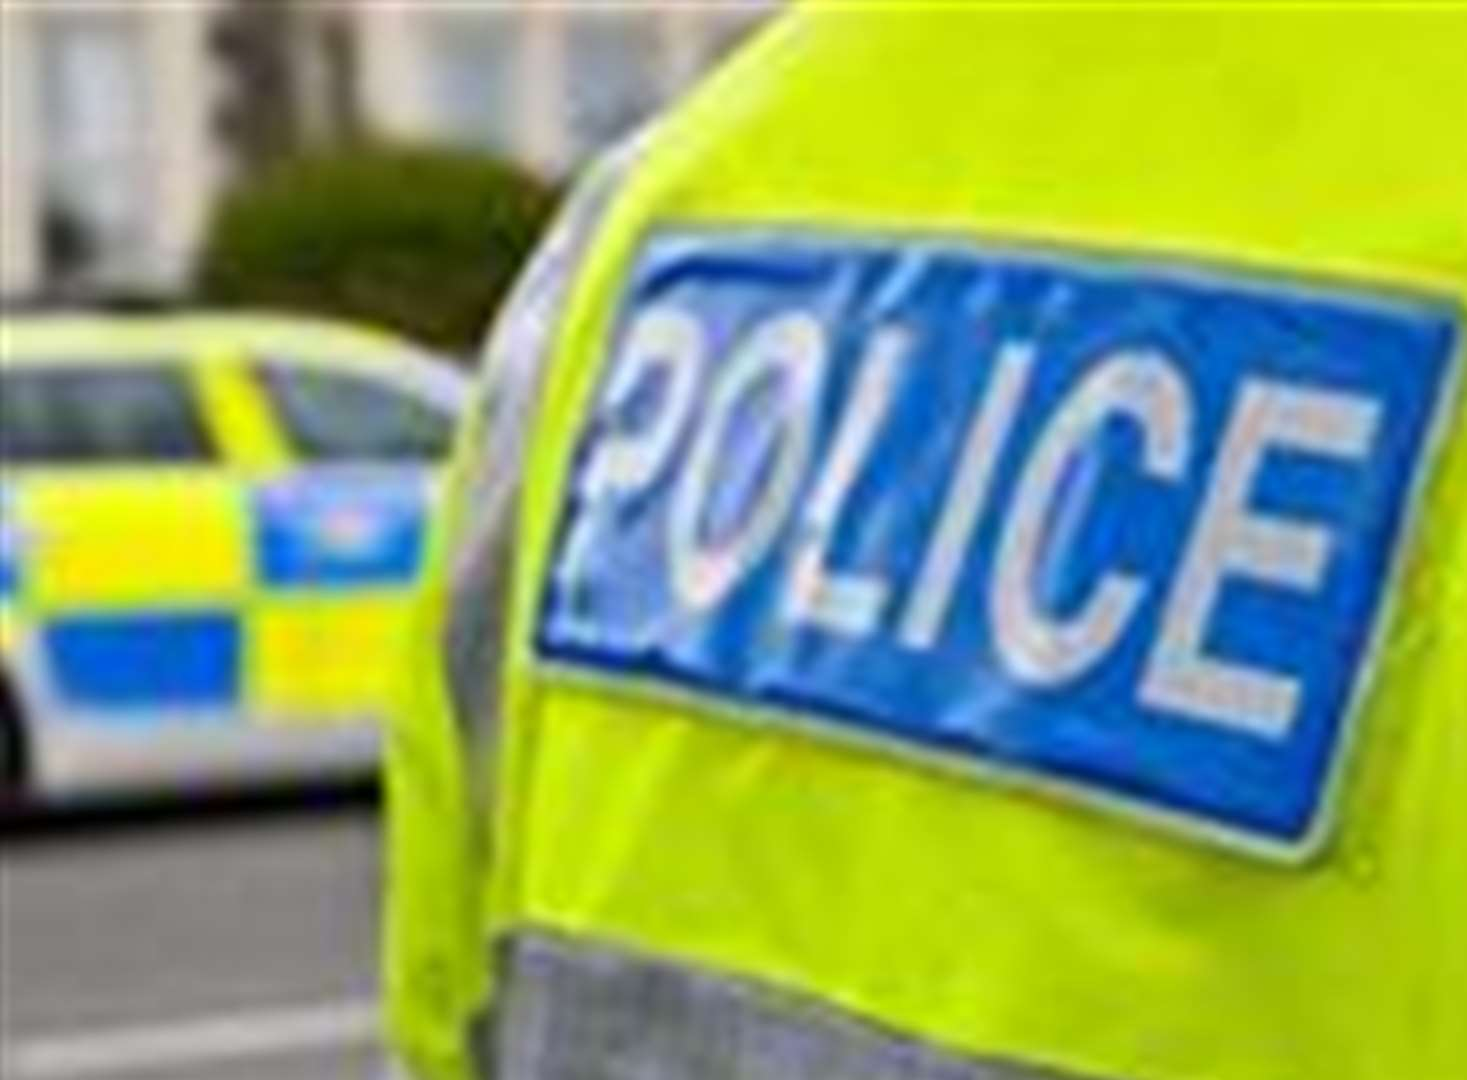 Police warning after spate of break-ins